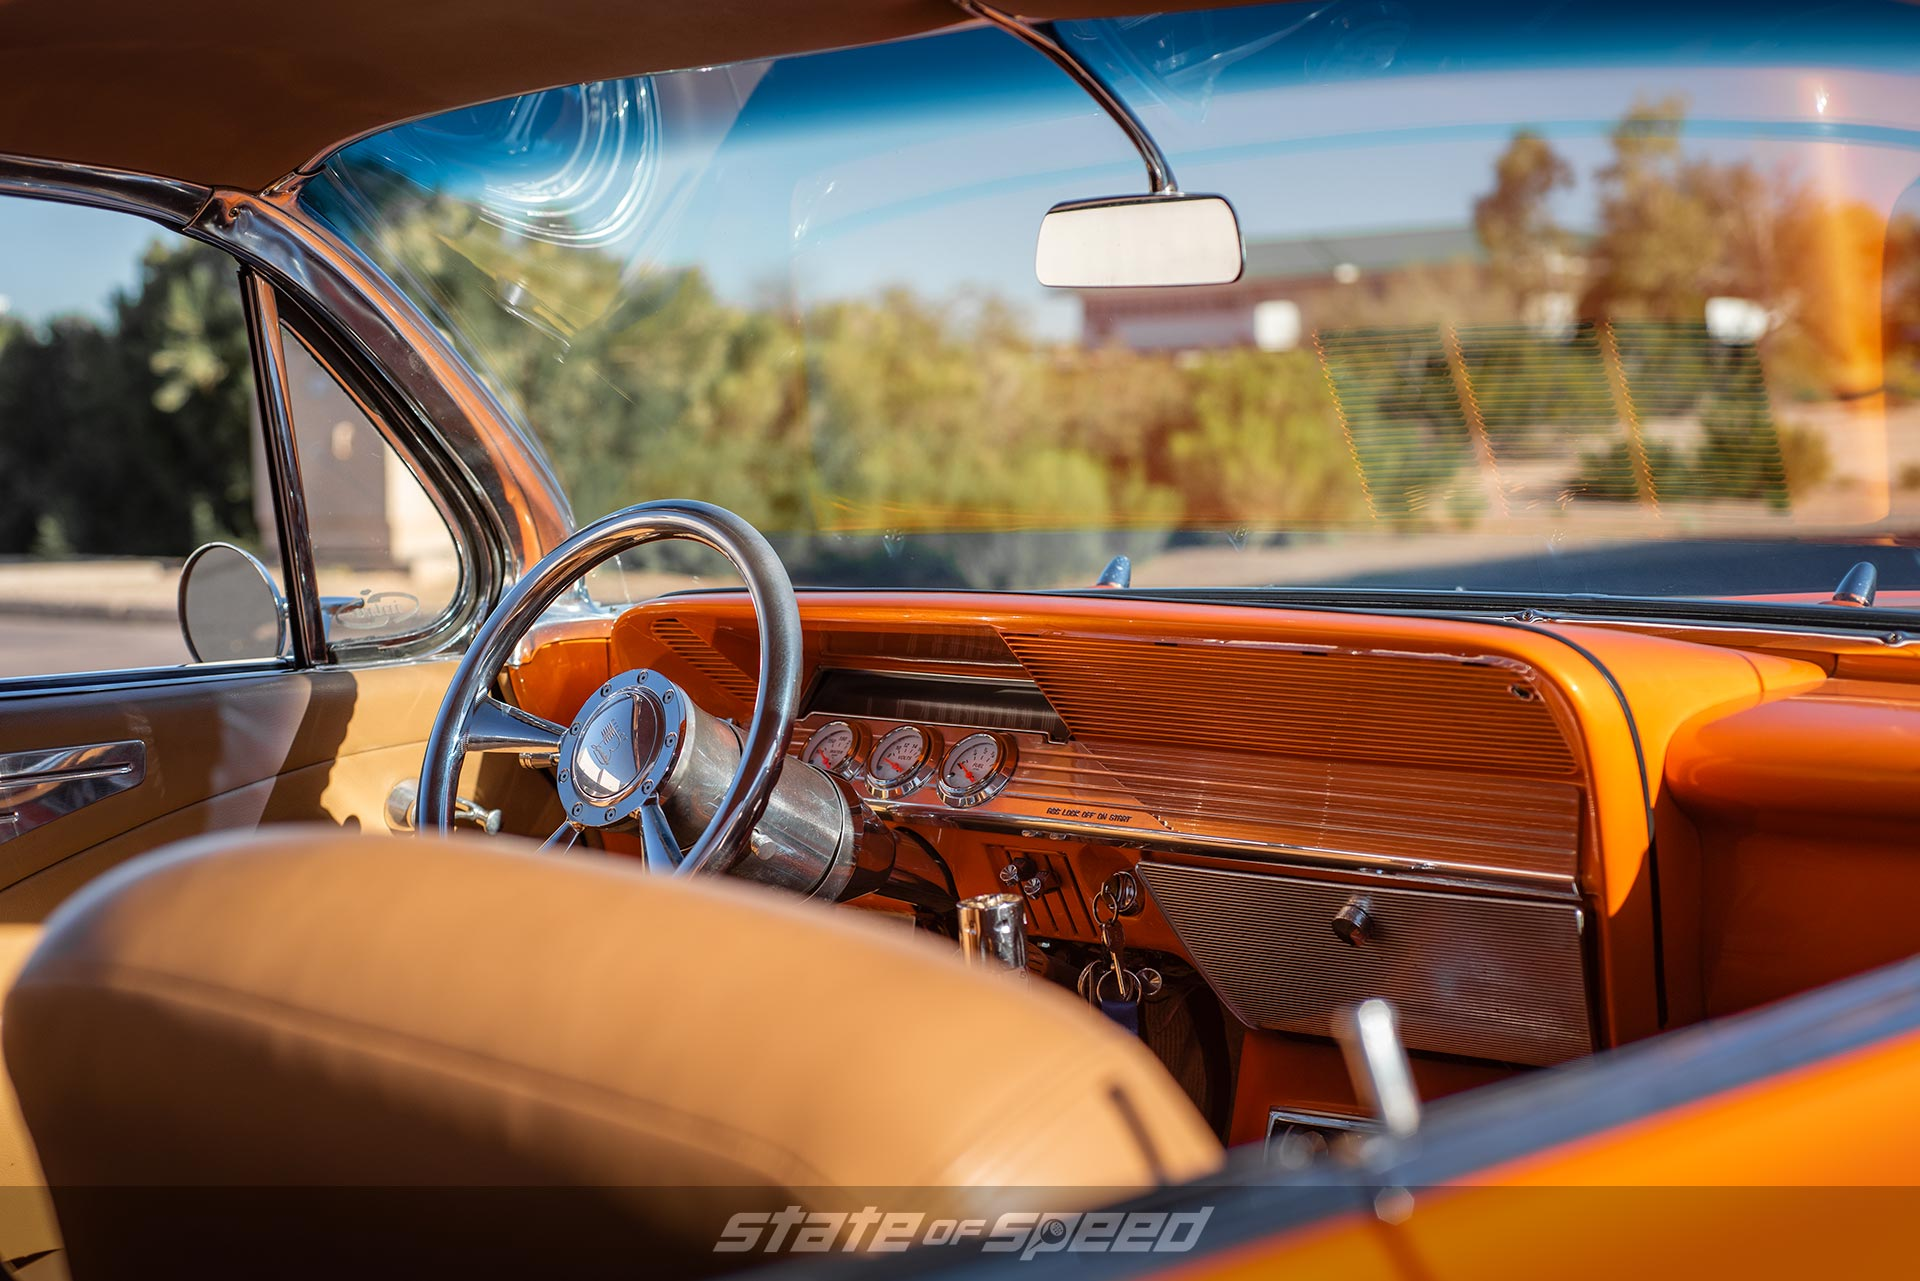 CHEVY IMPALA: WHAT'S NOT TO LOVE? • STATE OF SPEED